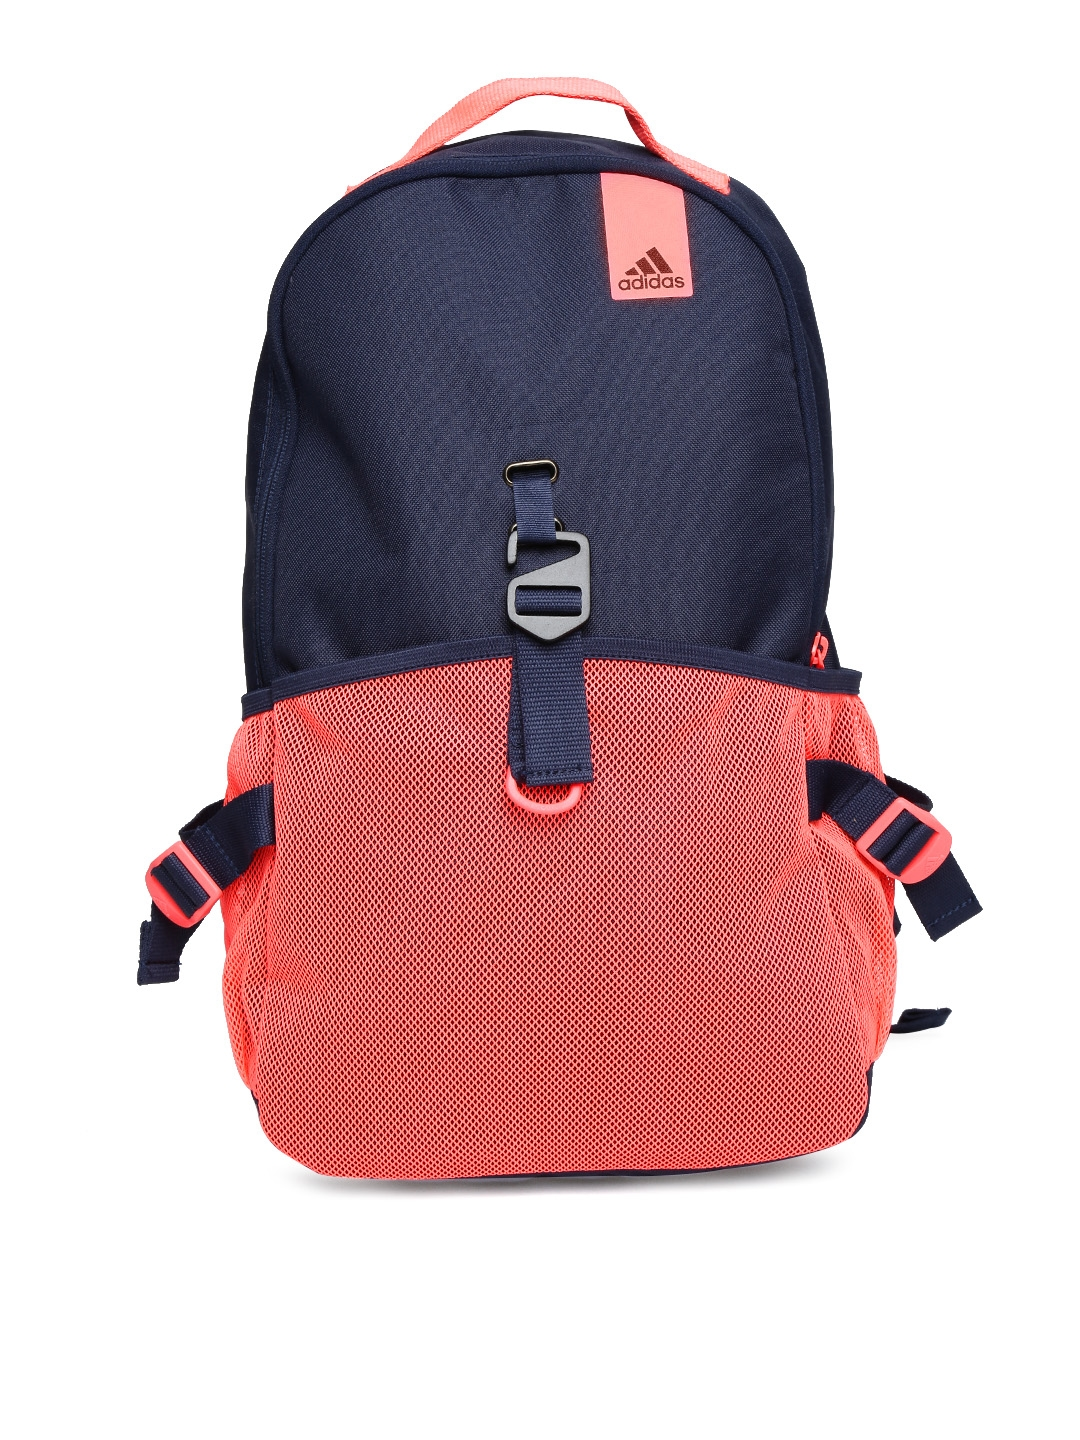 63c3a340fd Buy ADIDAS Women Navy   Neon Pink ST Backpack - Backpacks for Women 1072099